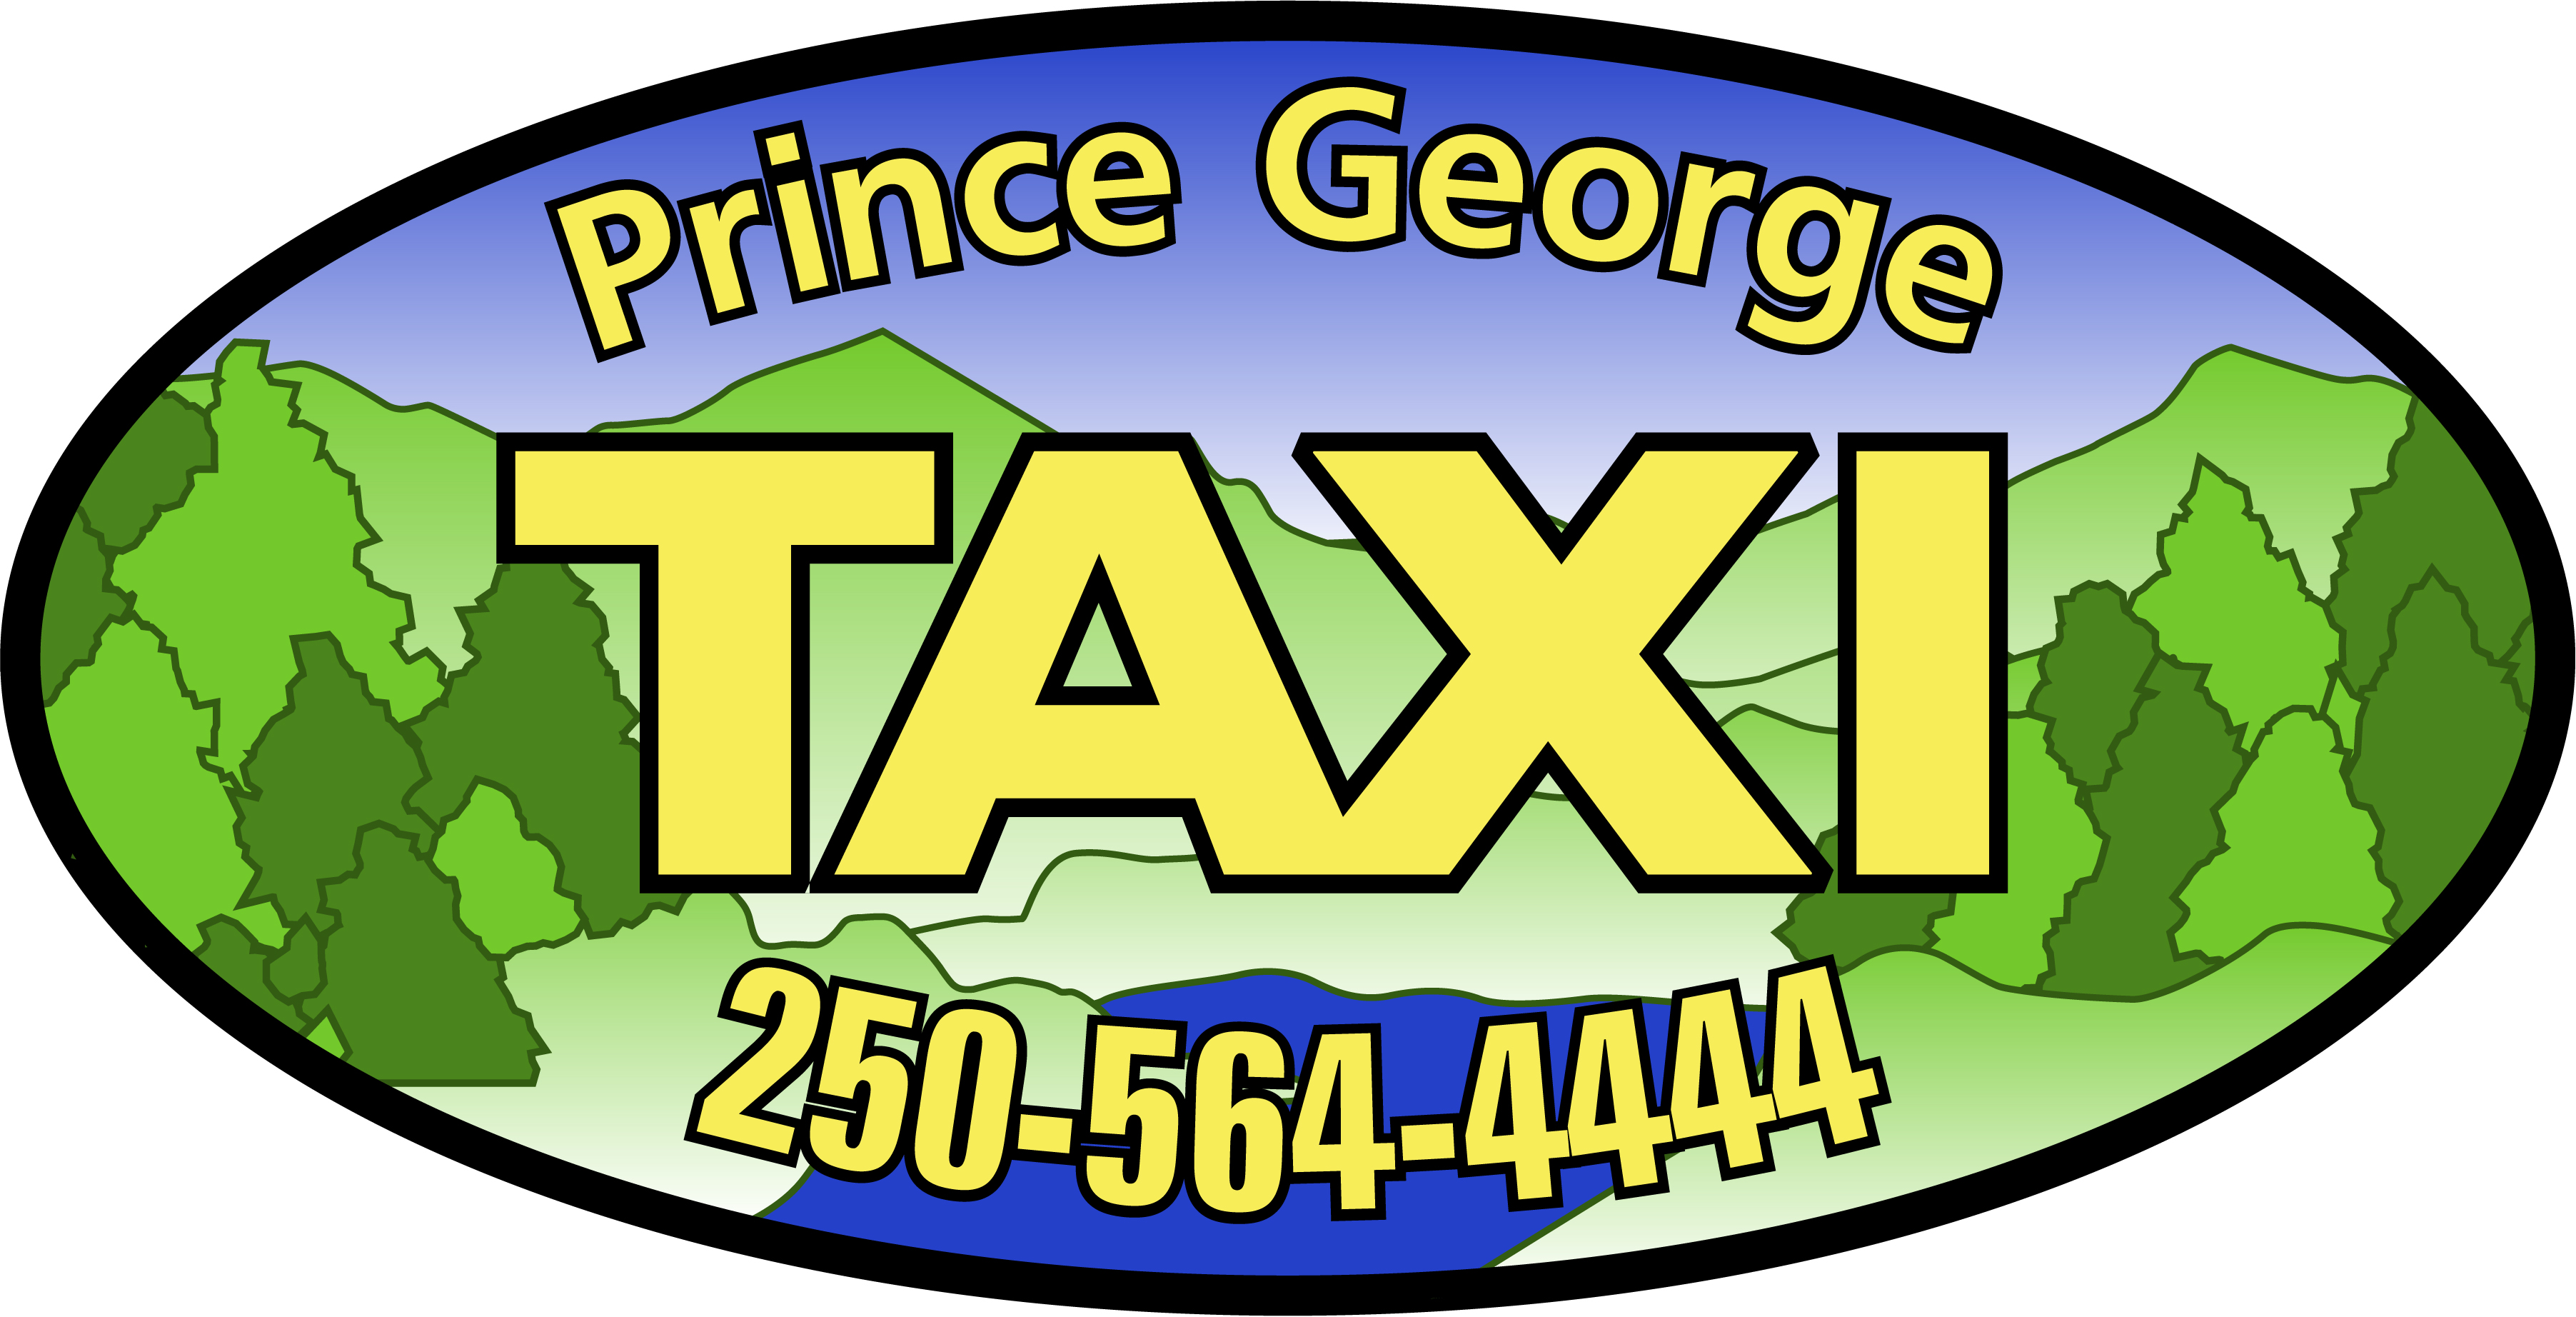 PRINCE GEORGE TAXI LTD logo